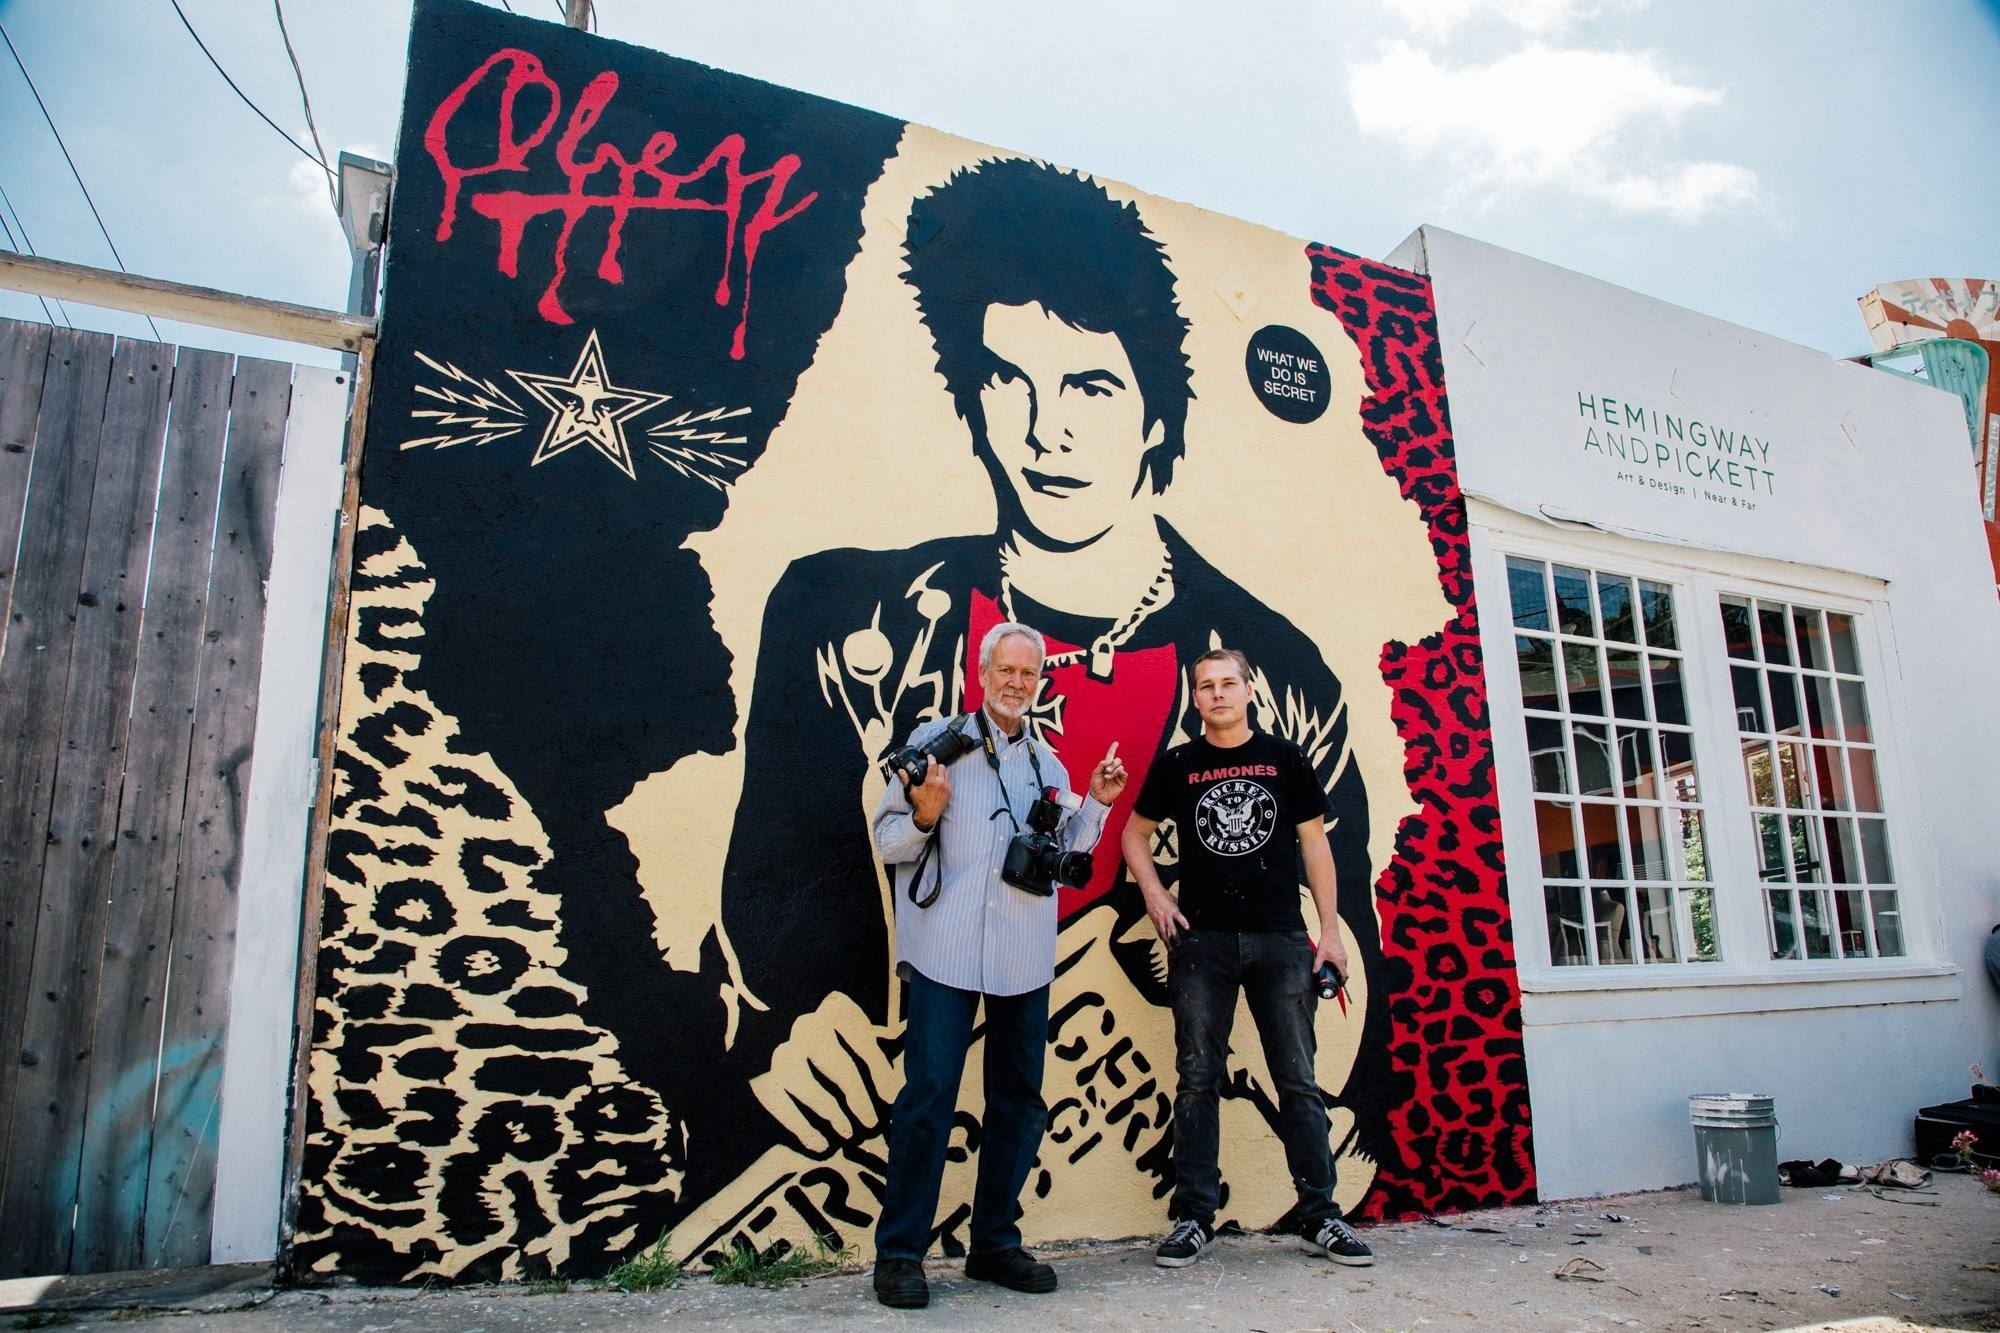 Gary Leonard and Shepard Fairey in front of the restored Darby Crash mural | Photo: Obey Giant